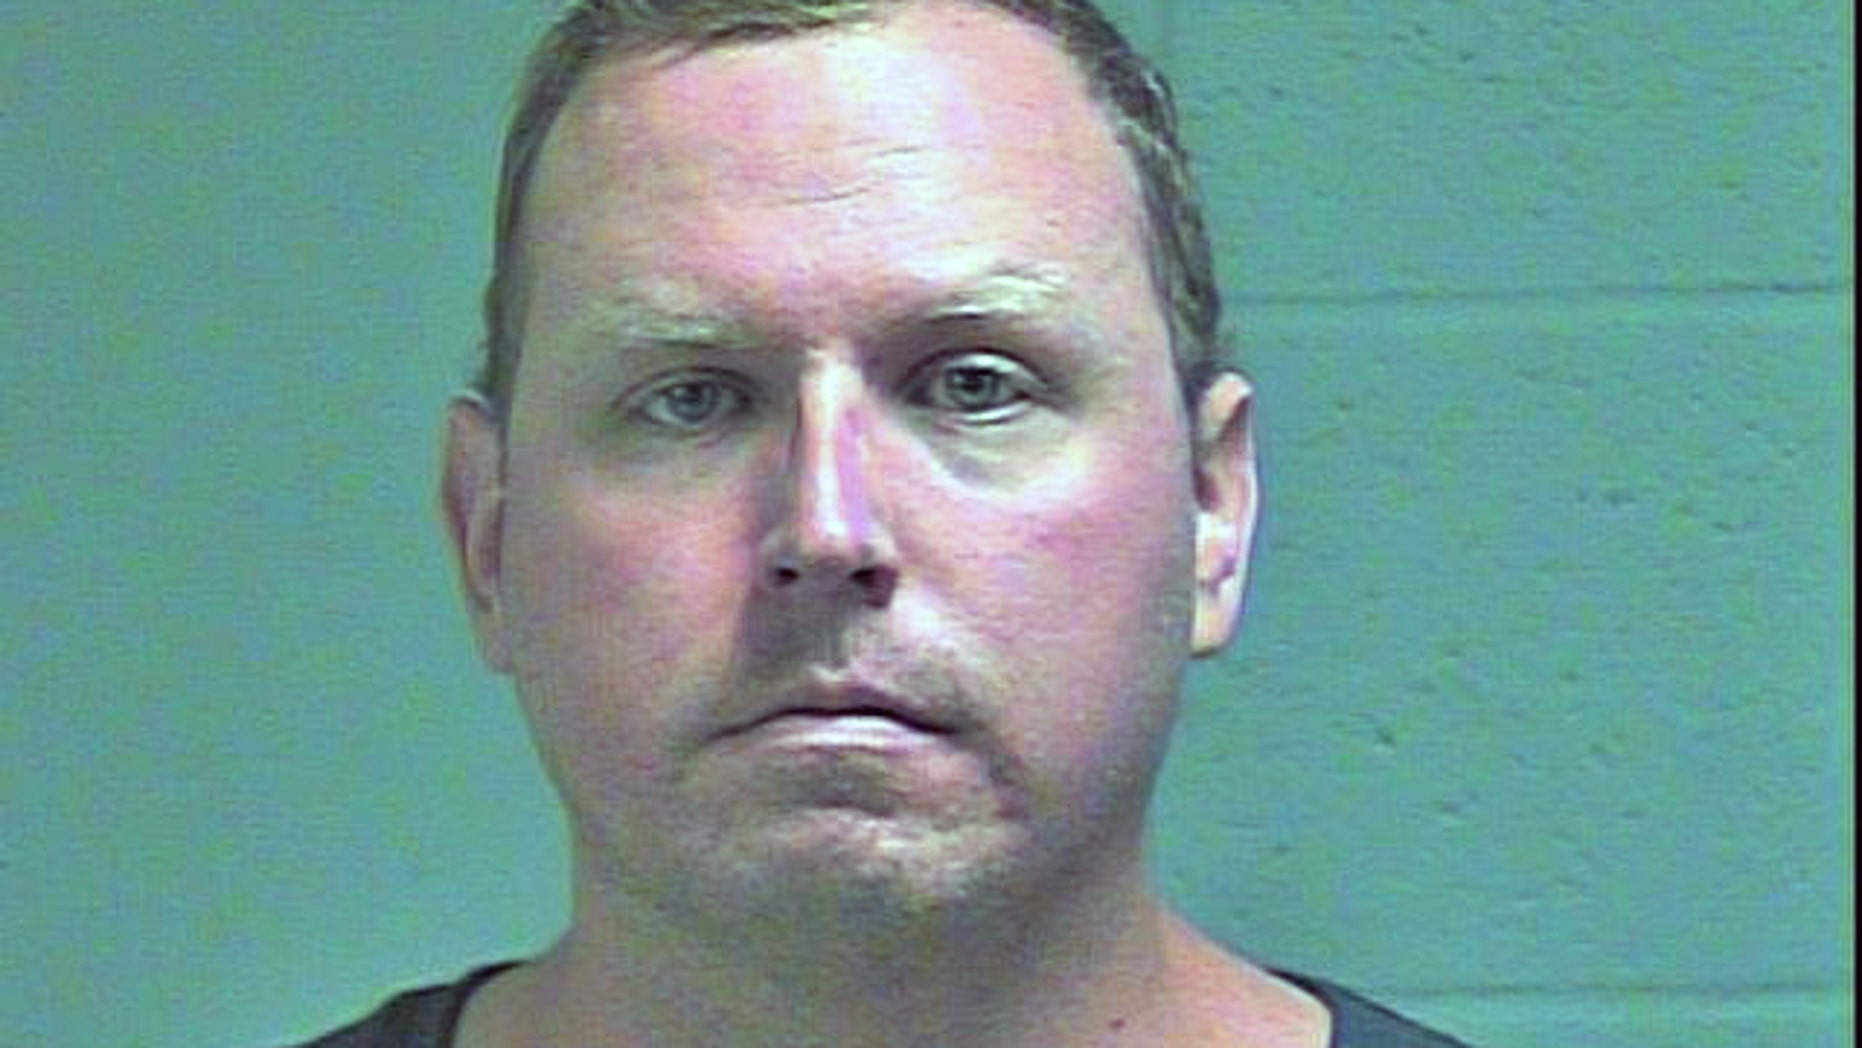 Sgt. Keith Sweeney is accused of second-degree murder in the shooting death of Dustin Pigeon.